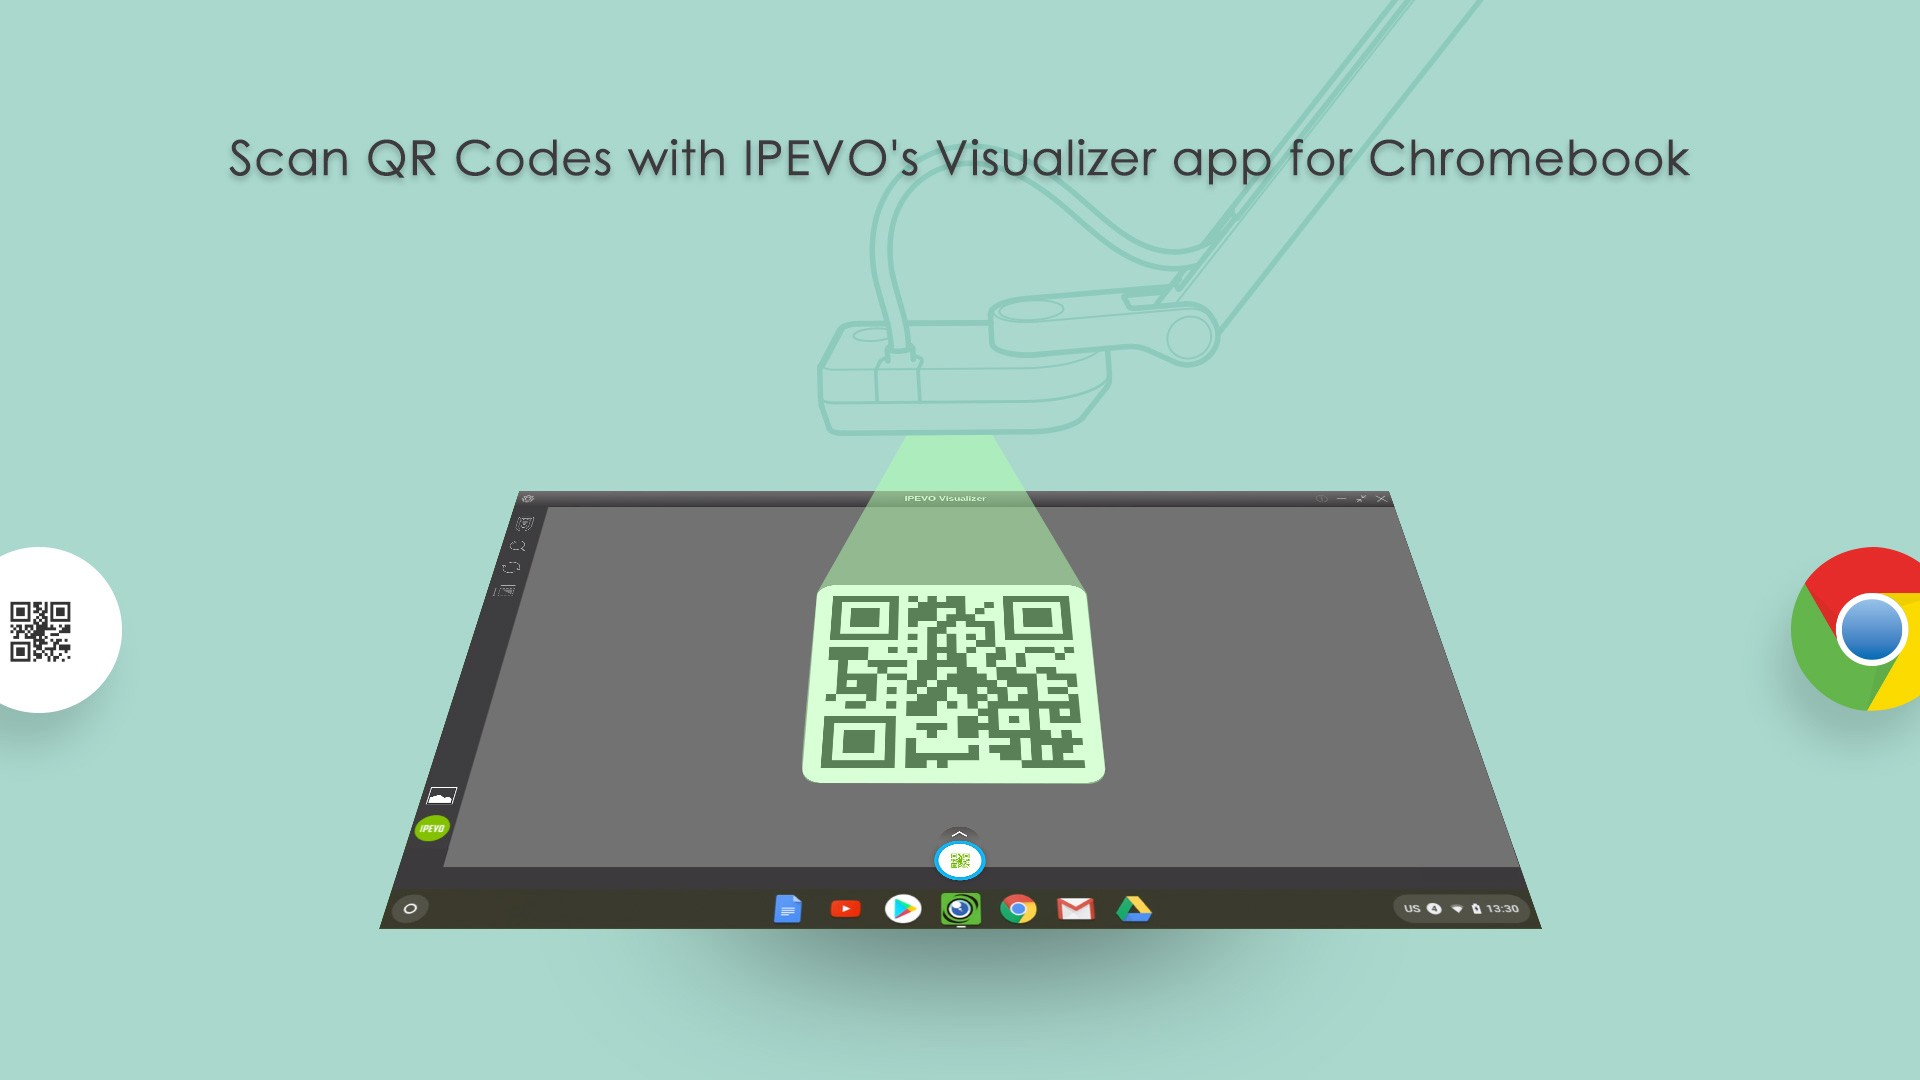 IPEVO Visualizer for Chromebook — Scan QR Codes